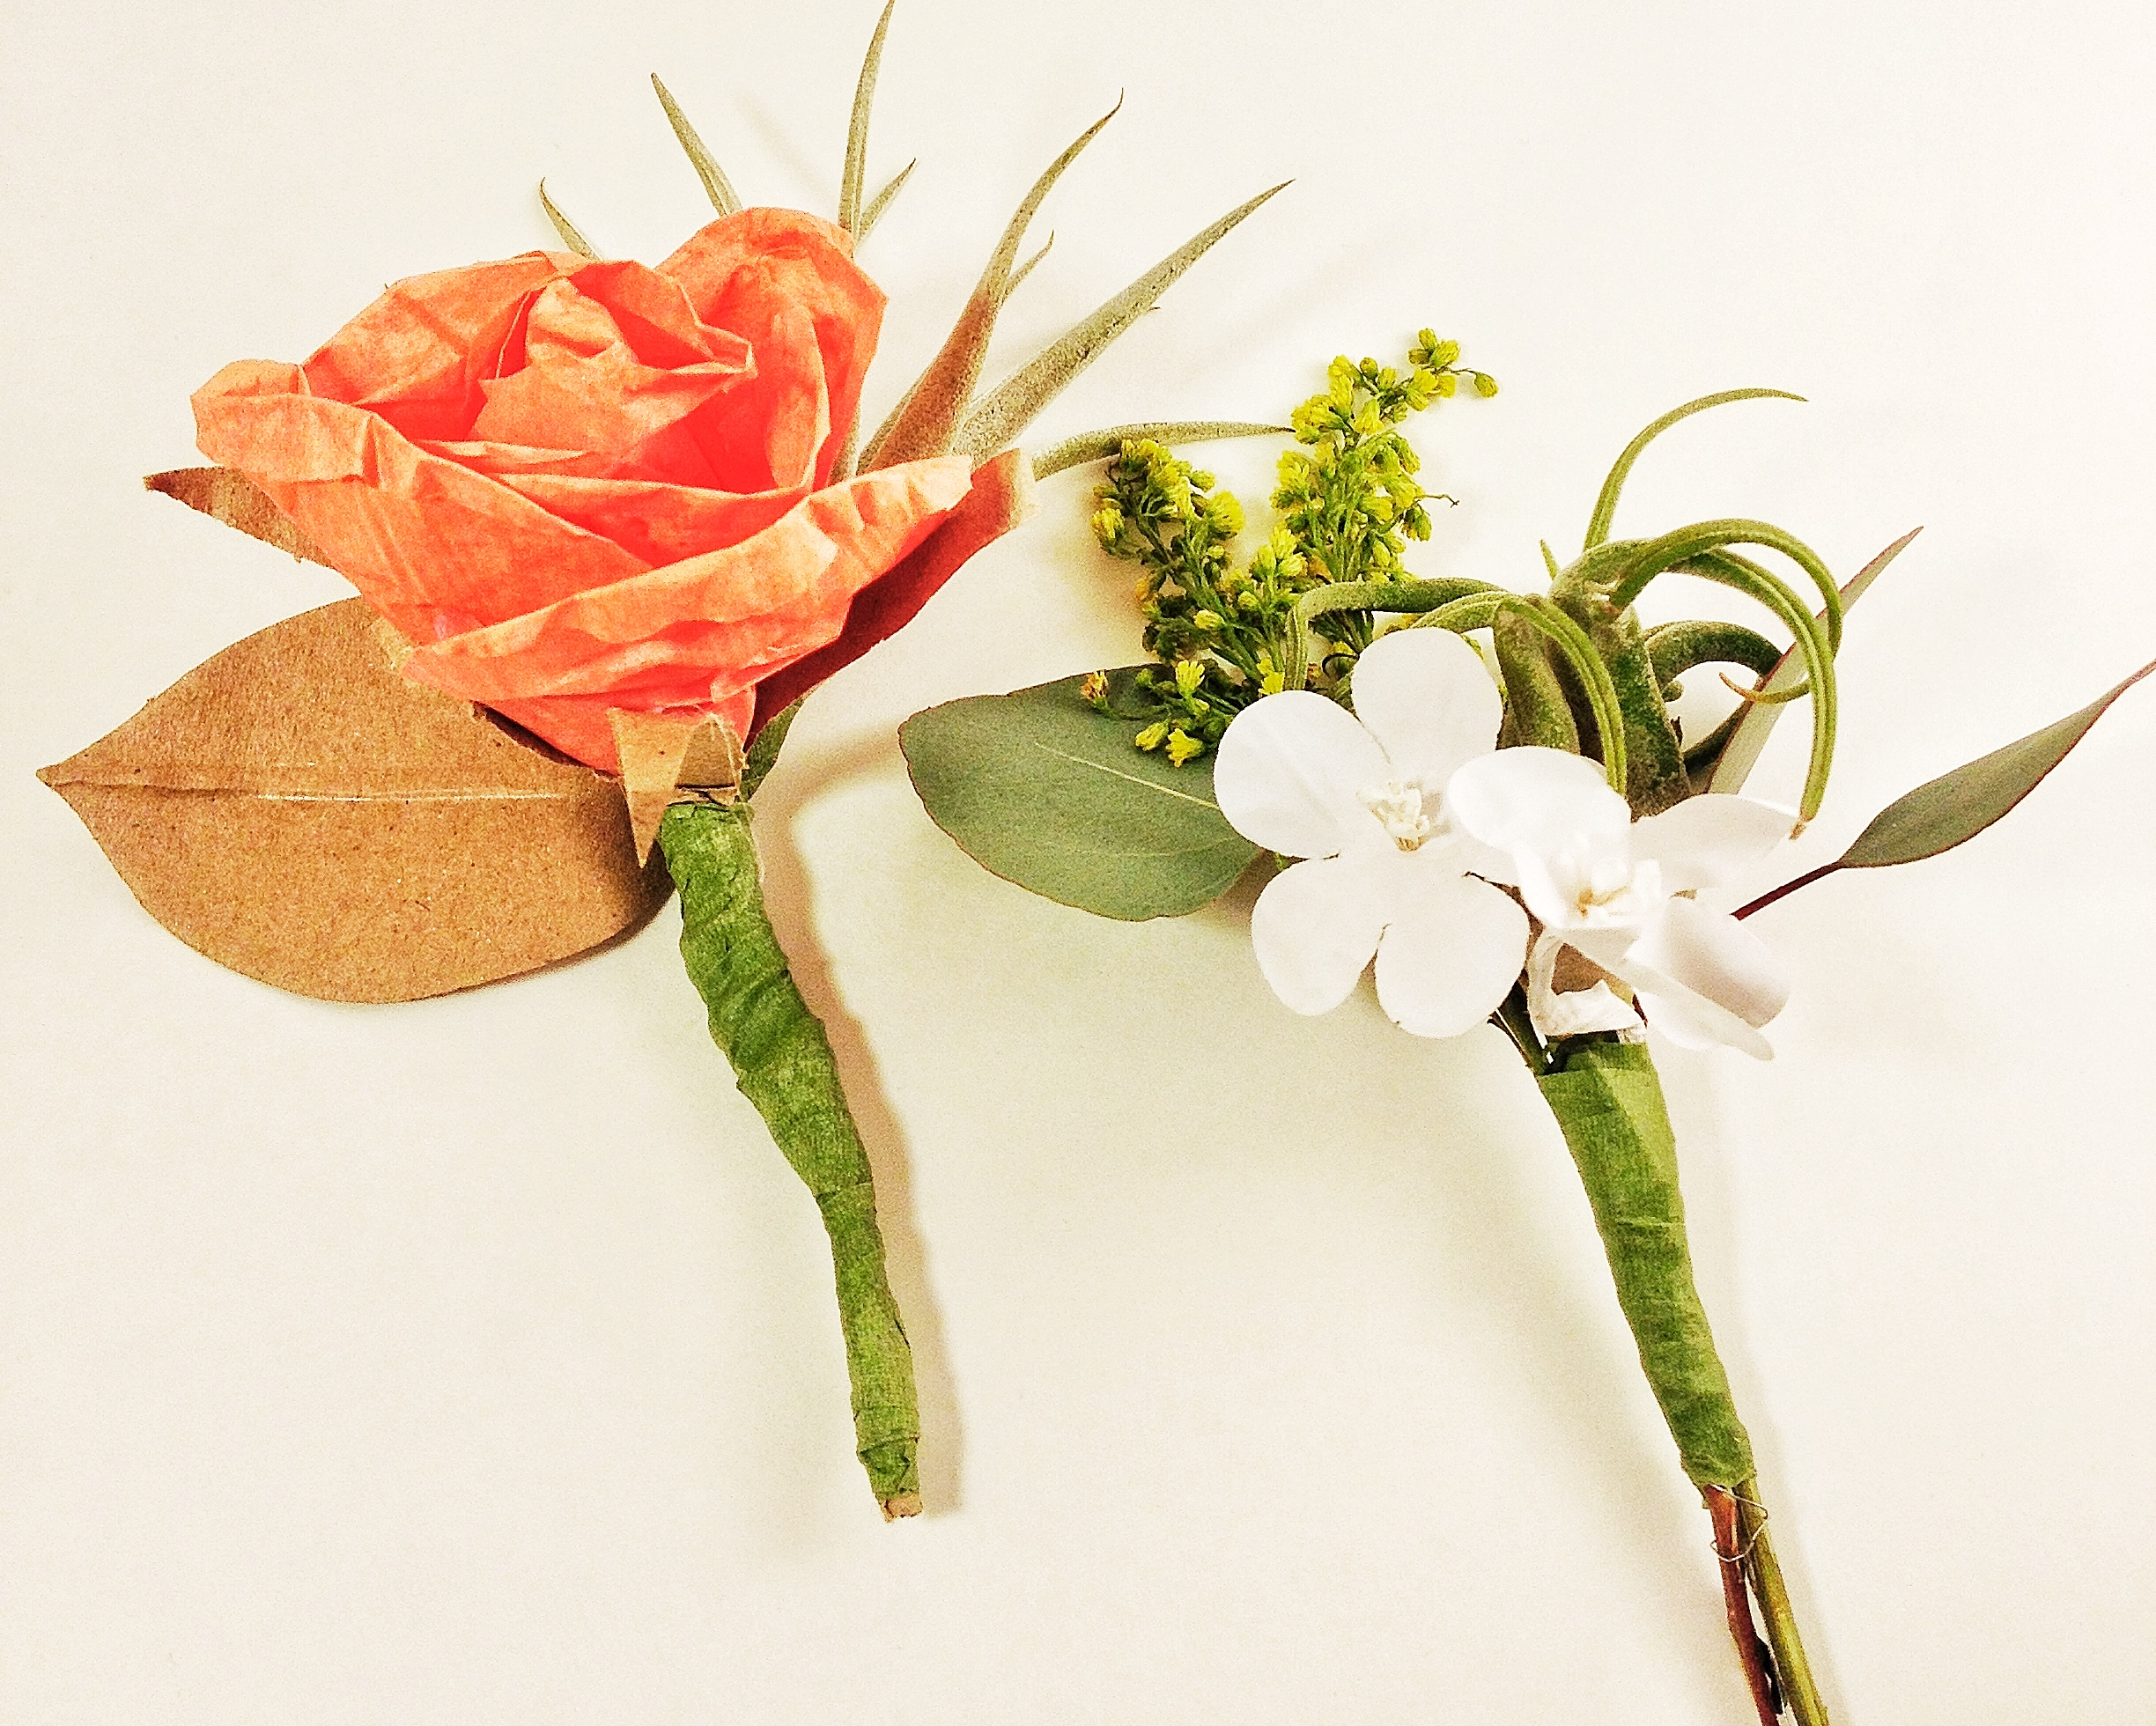 DIY air plant and paper flower boutonniere made at West Elm Spring Social in Chelsea #wespringsocial #westelm, hosted by Michelle Edgemont